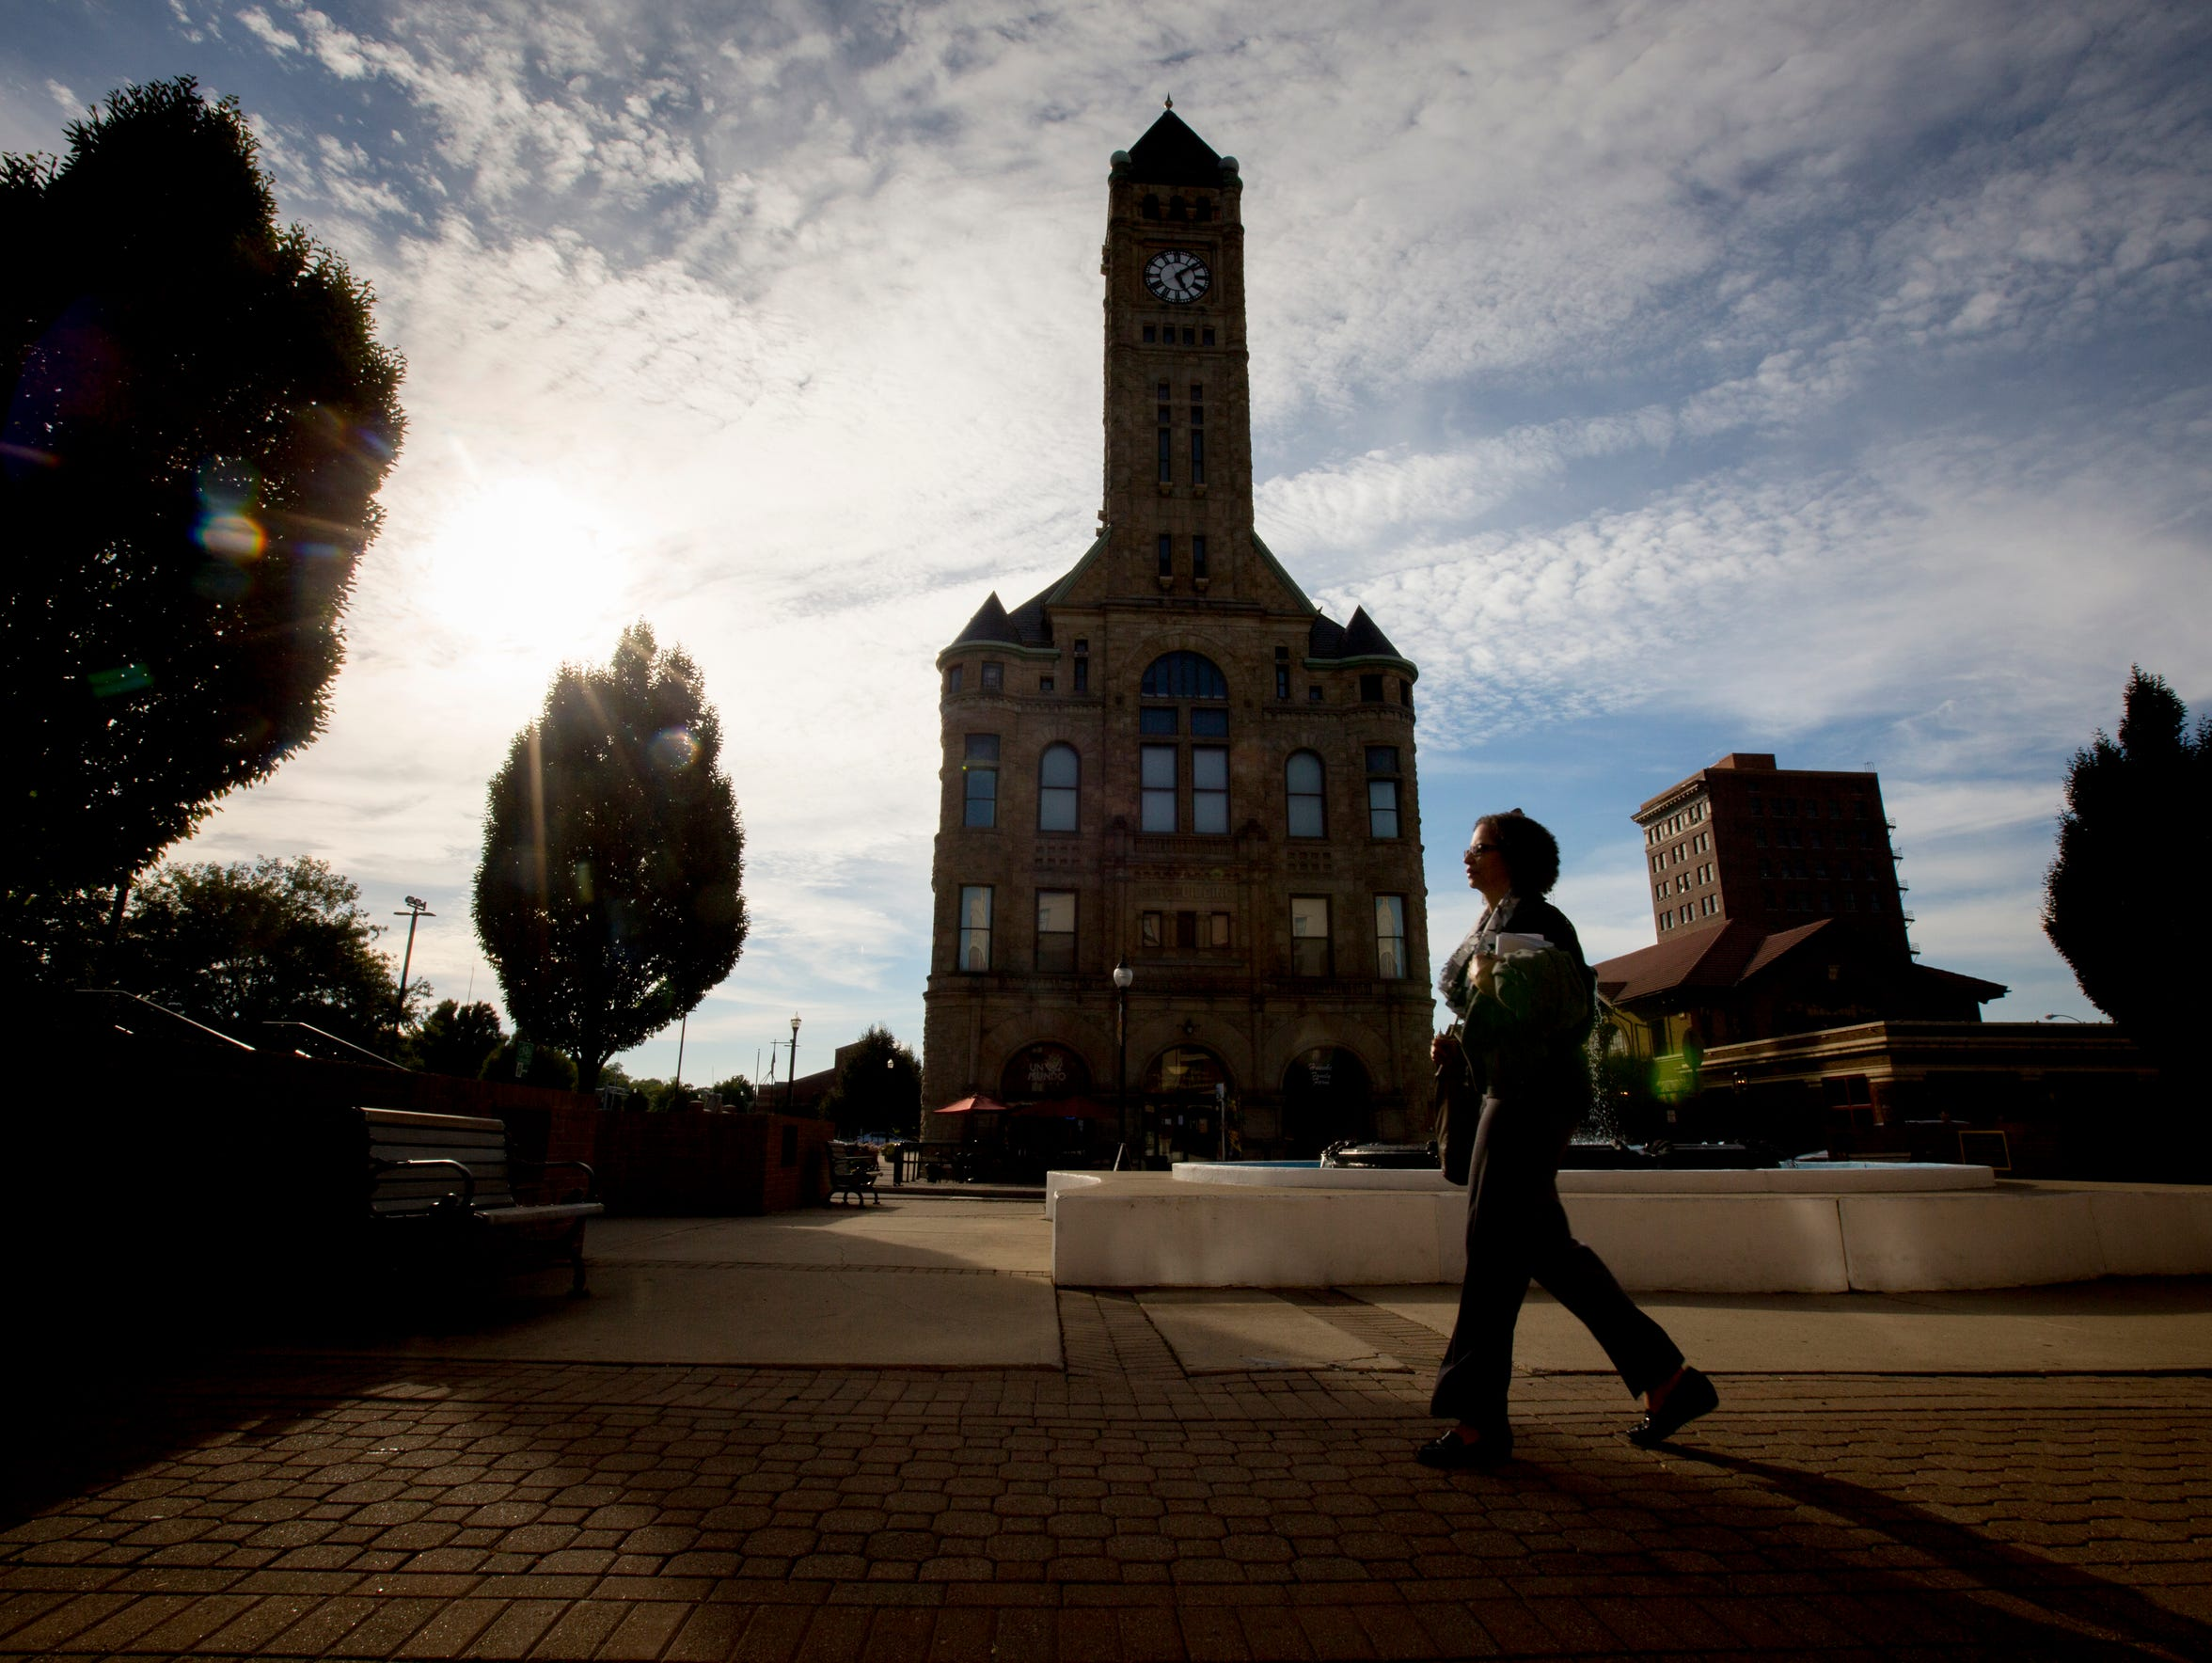 Pat Bray leaves work in downtown Springfield, Ohio.